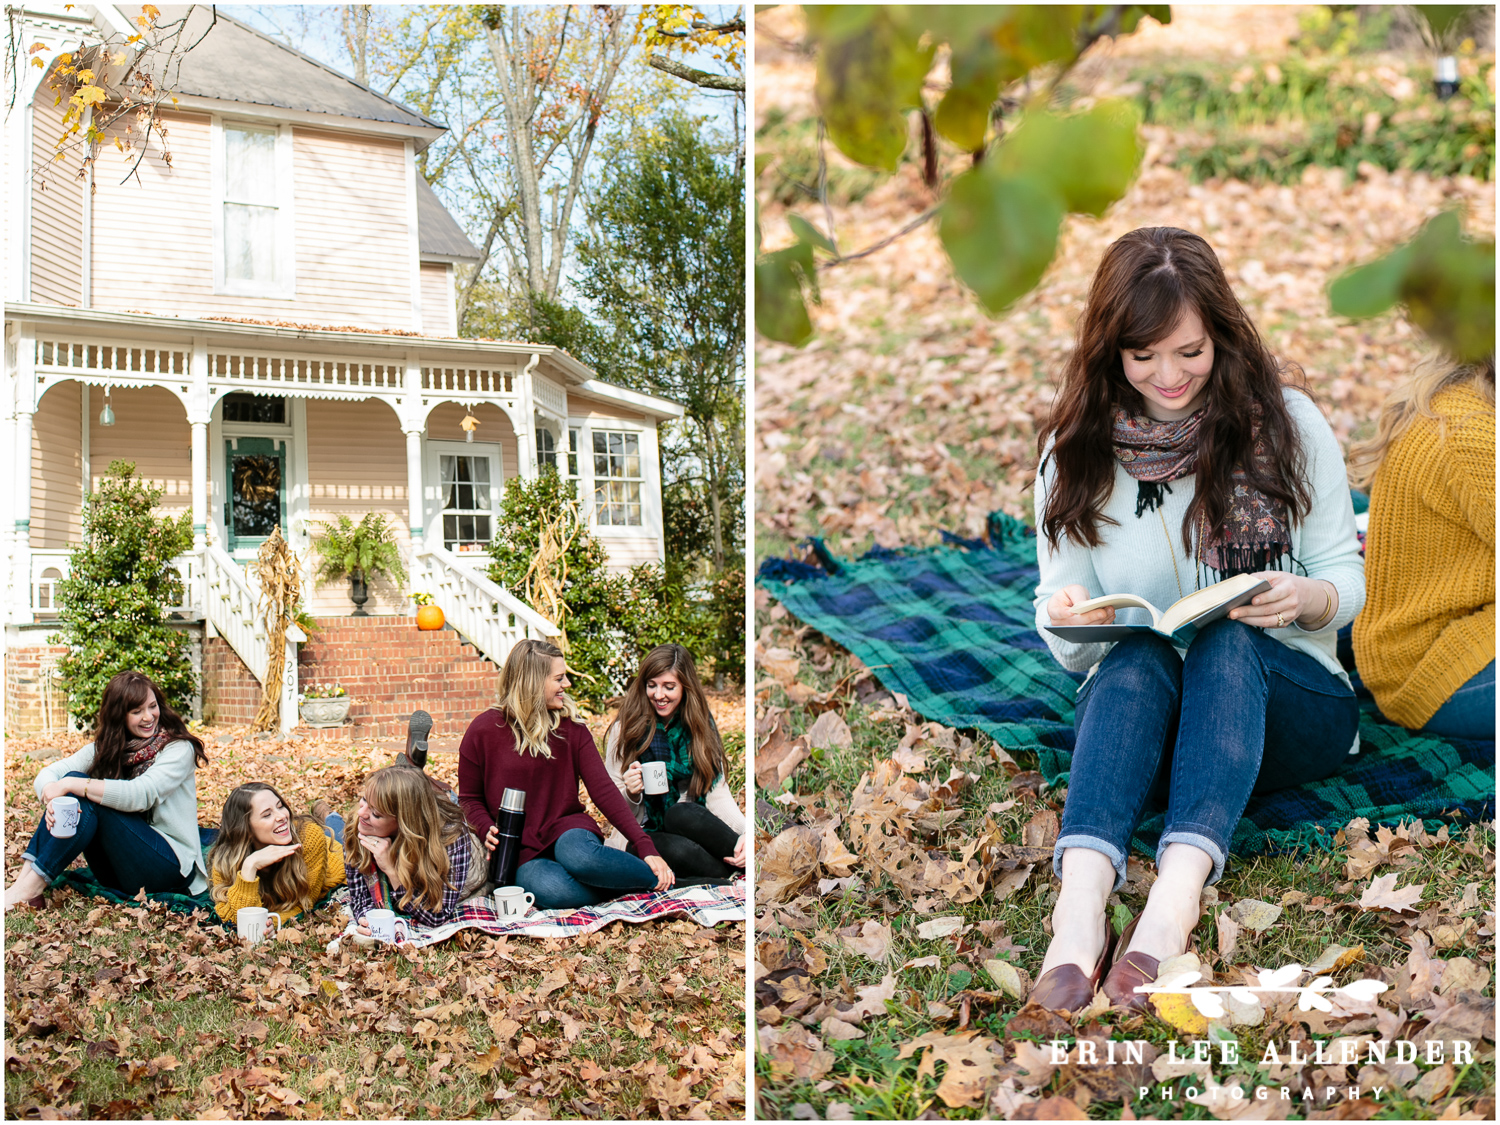 Gilmore_Girls_Reading_On_Lawn